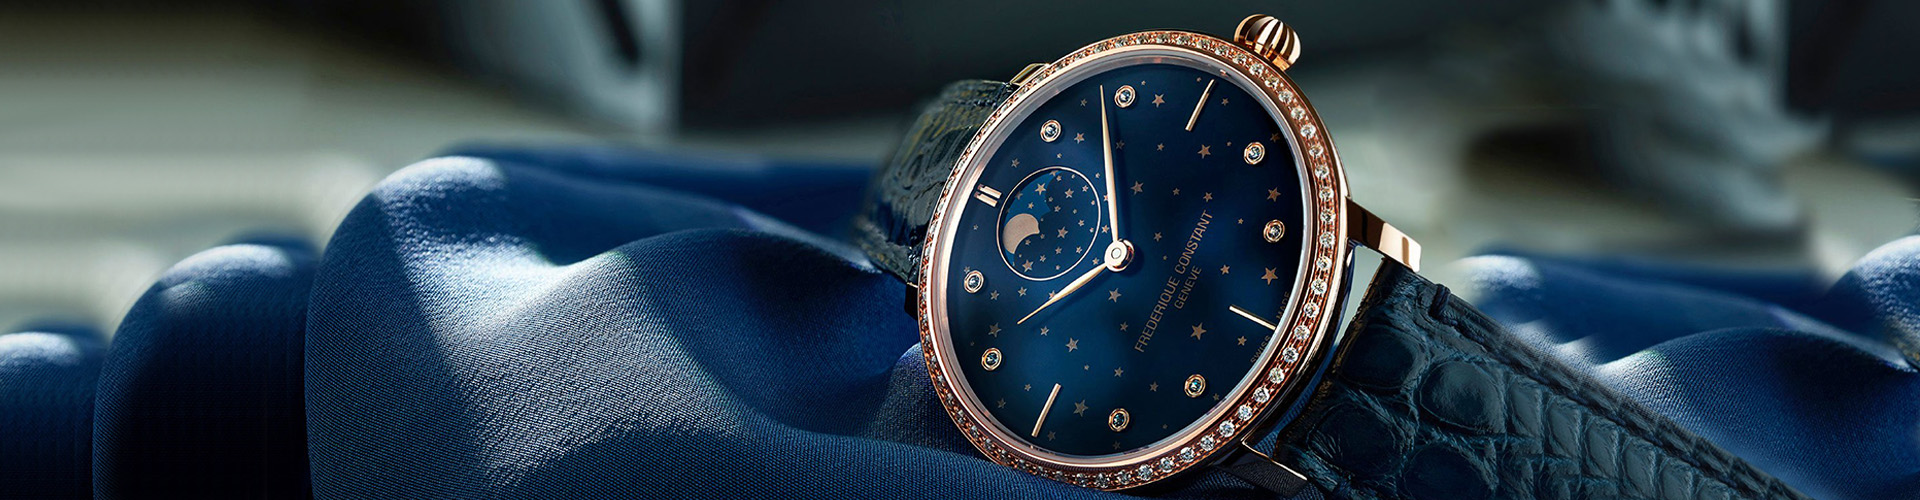 Nettletons Jewellers Introduces Frederique Constant Watches